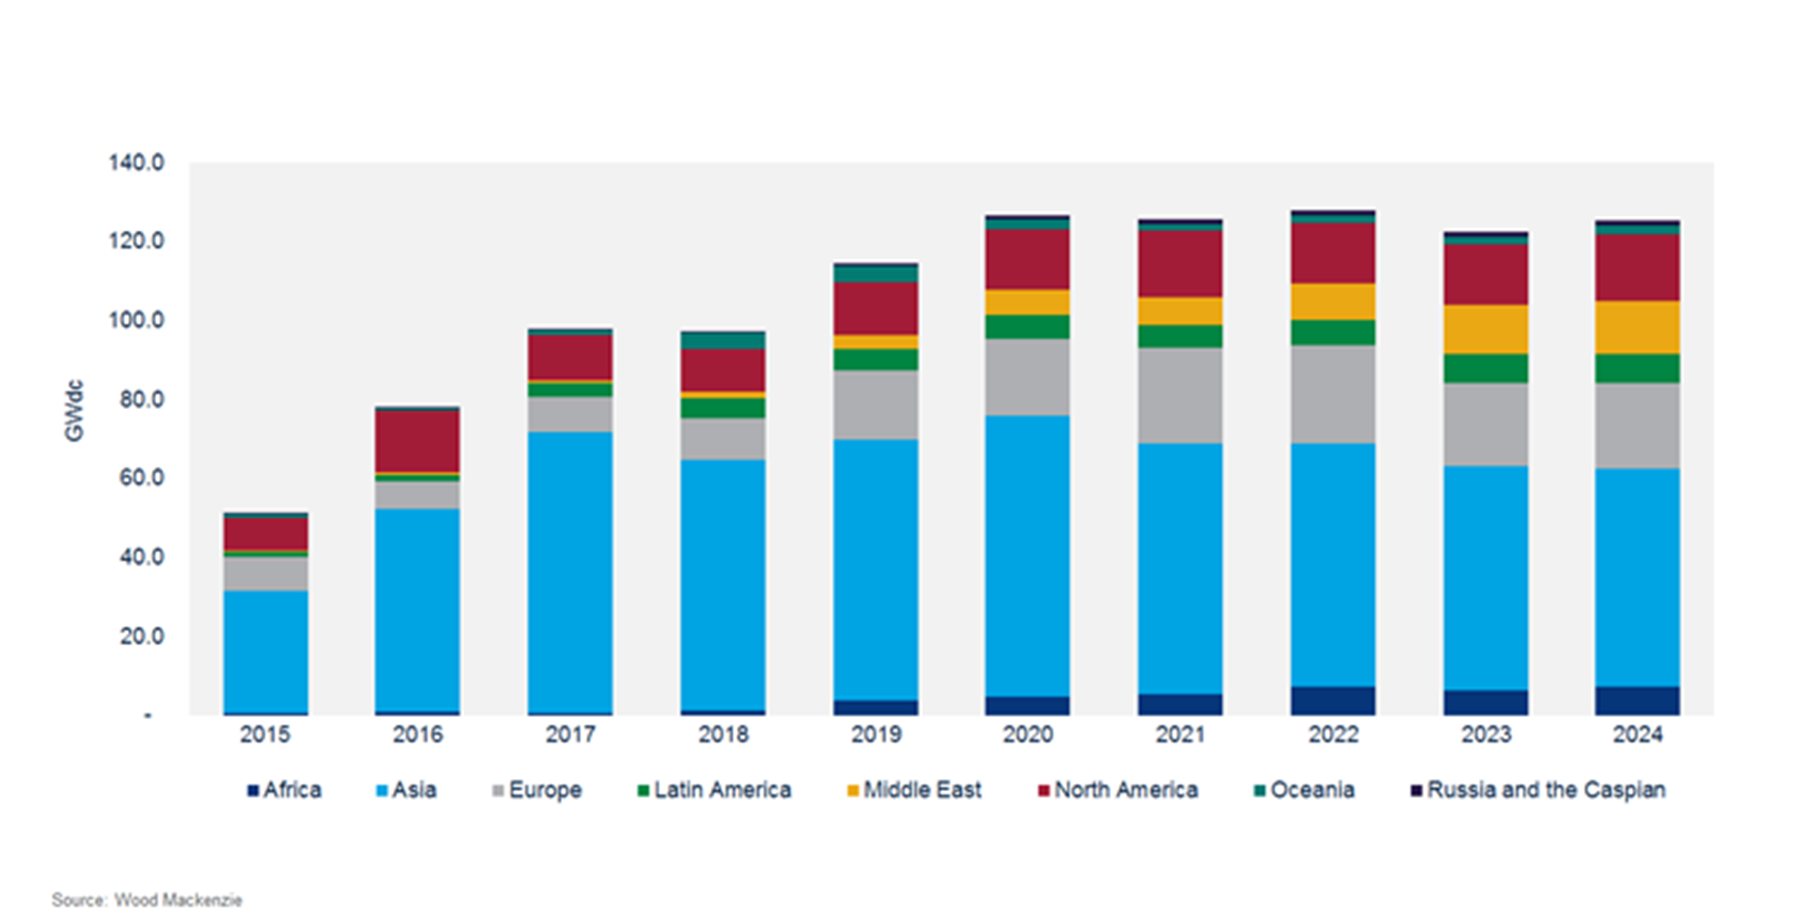 PV installations are forecasted to top out in the 120GW to 125GW range through 2024. Image: Wood Mackenzie